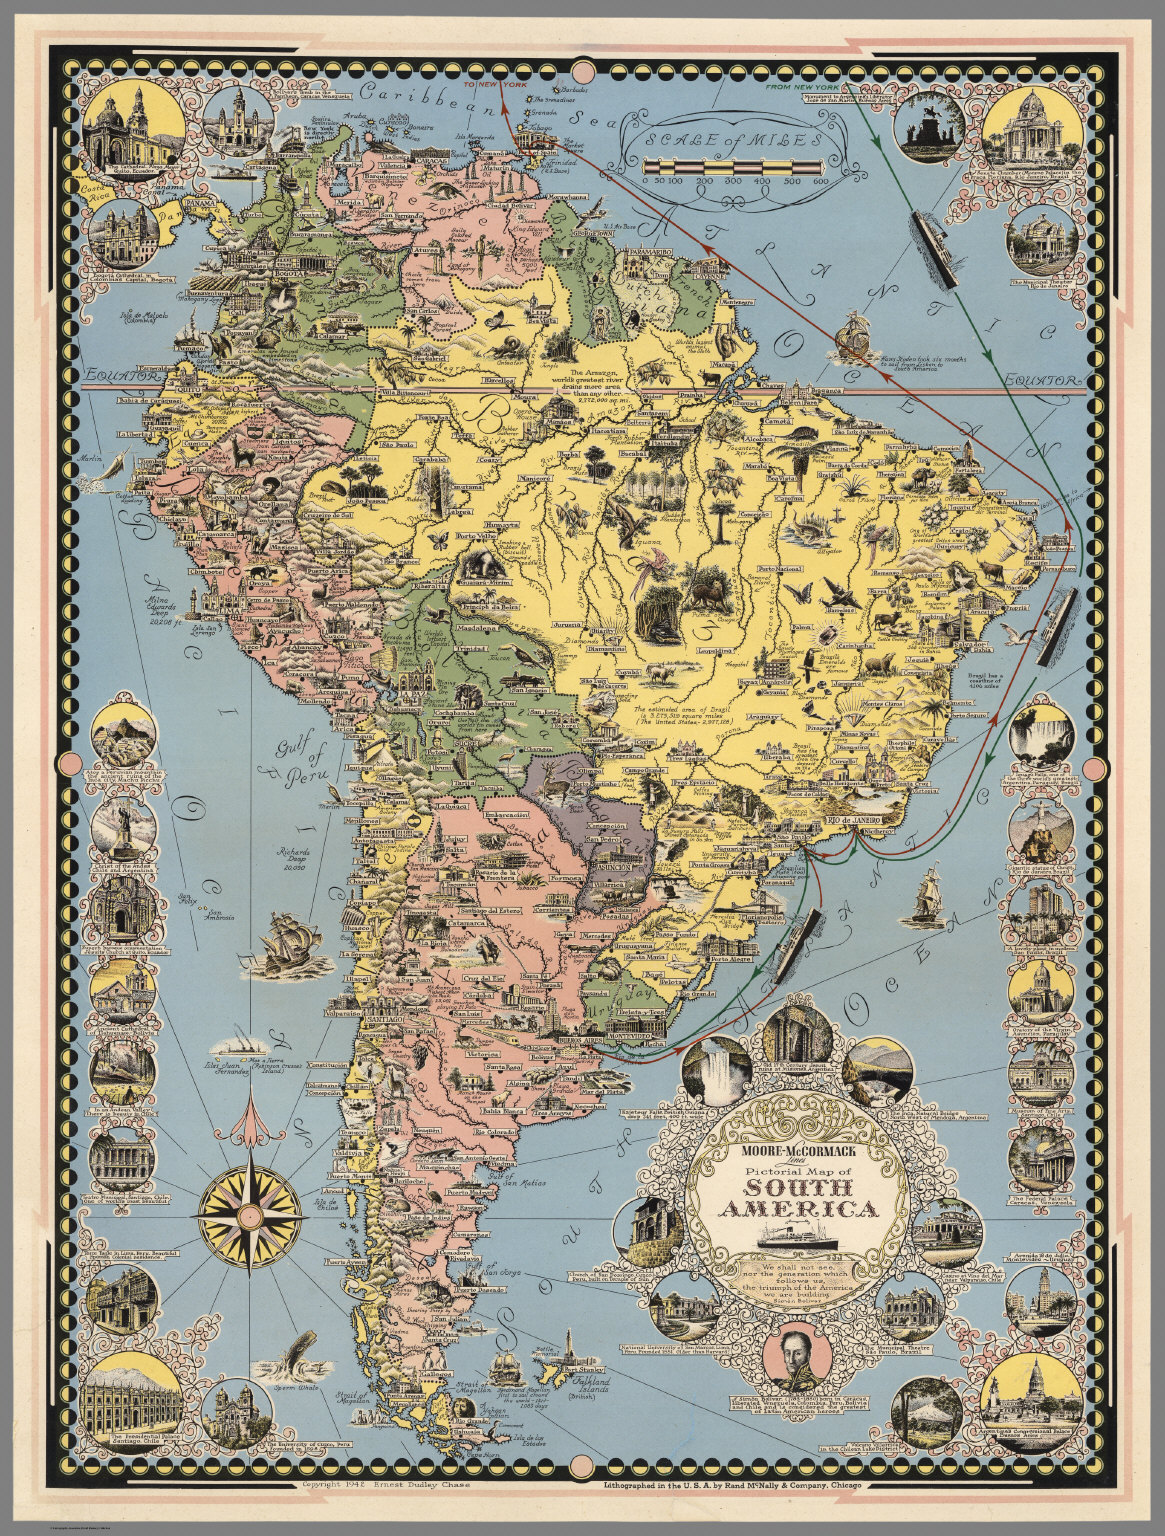 MooreMcCormack Lines Pictorial Map of South America David